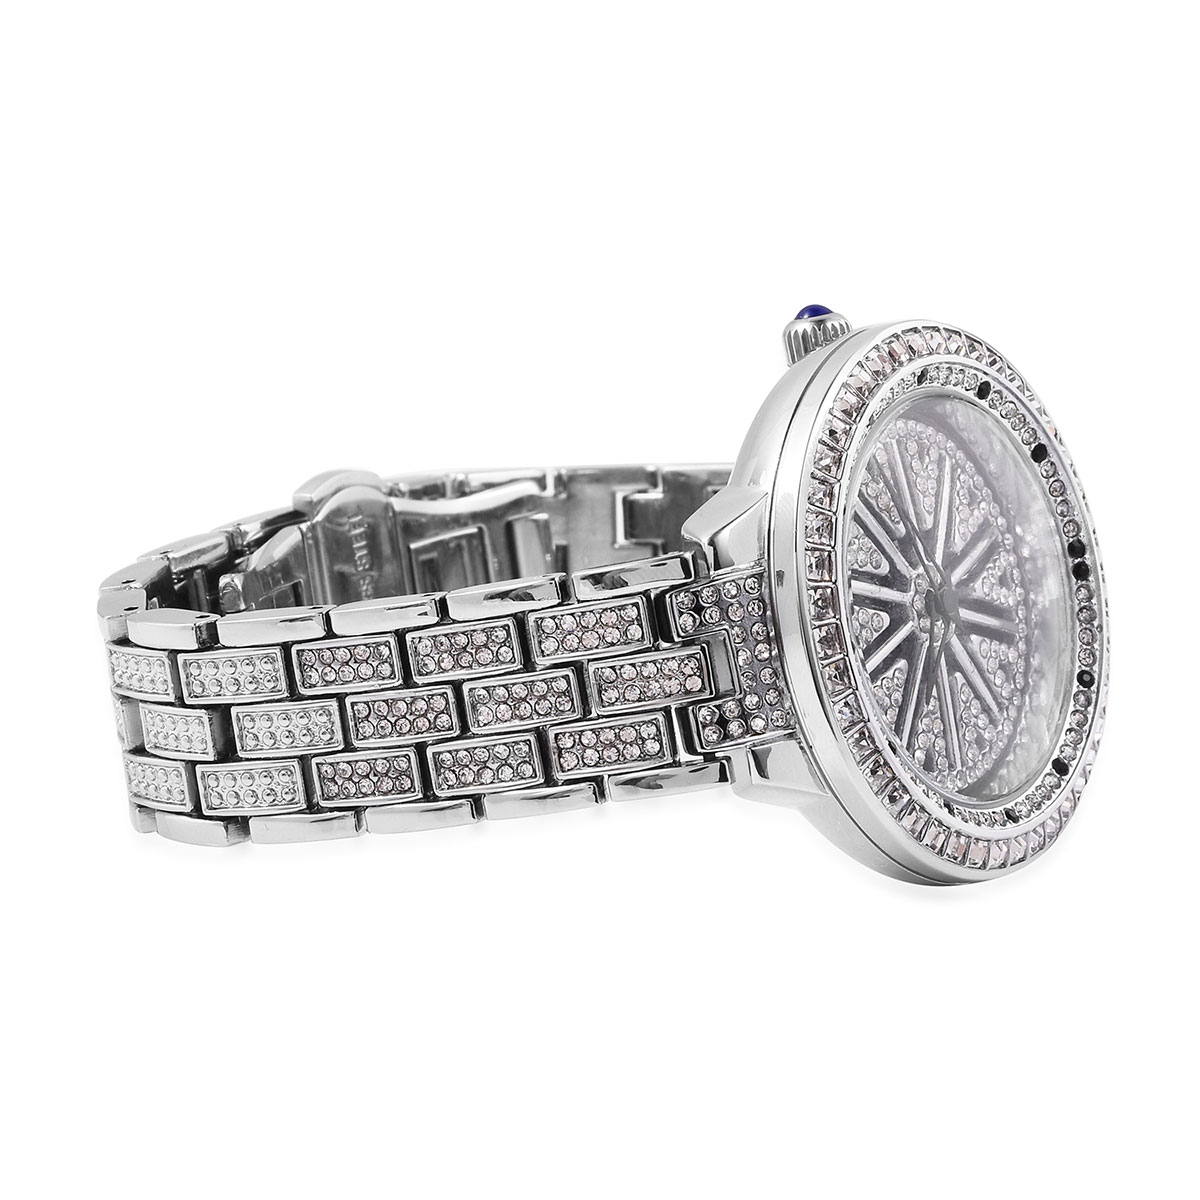 GENOA White and Black Austrian Crystal Miyota Japanese Movement Water Resistant Watch in Silvertone with Stainless Steel Back TGW 5.34 cts.